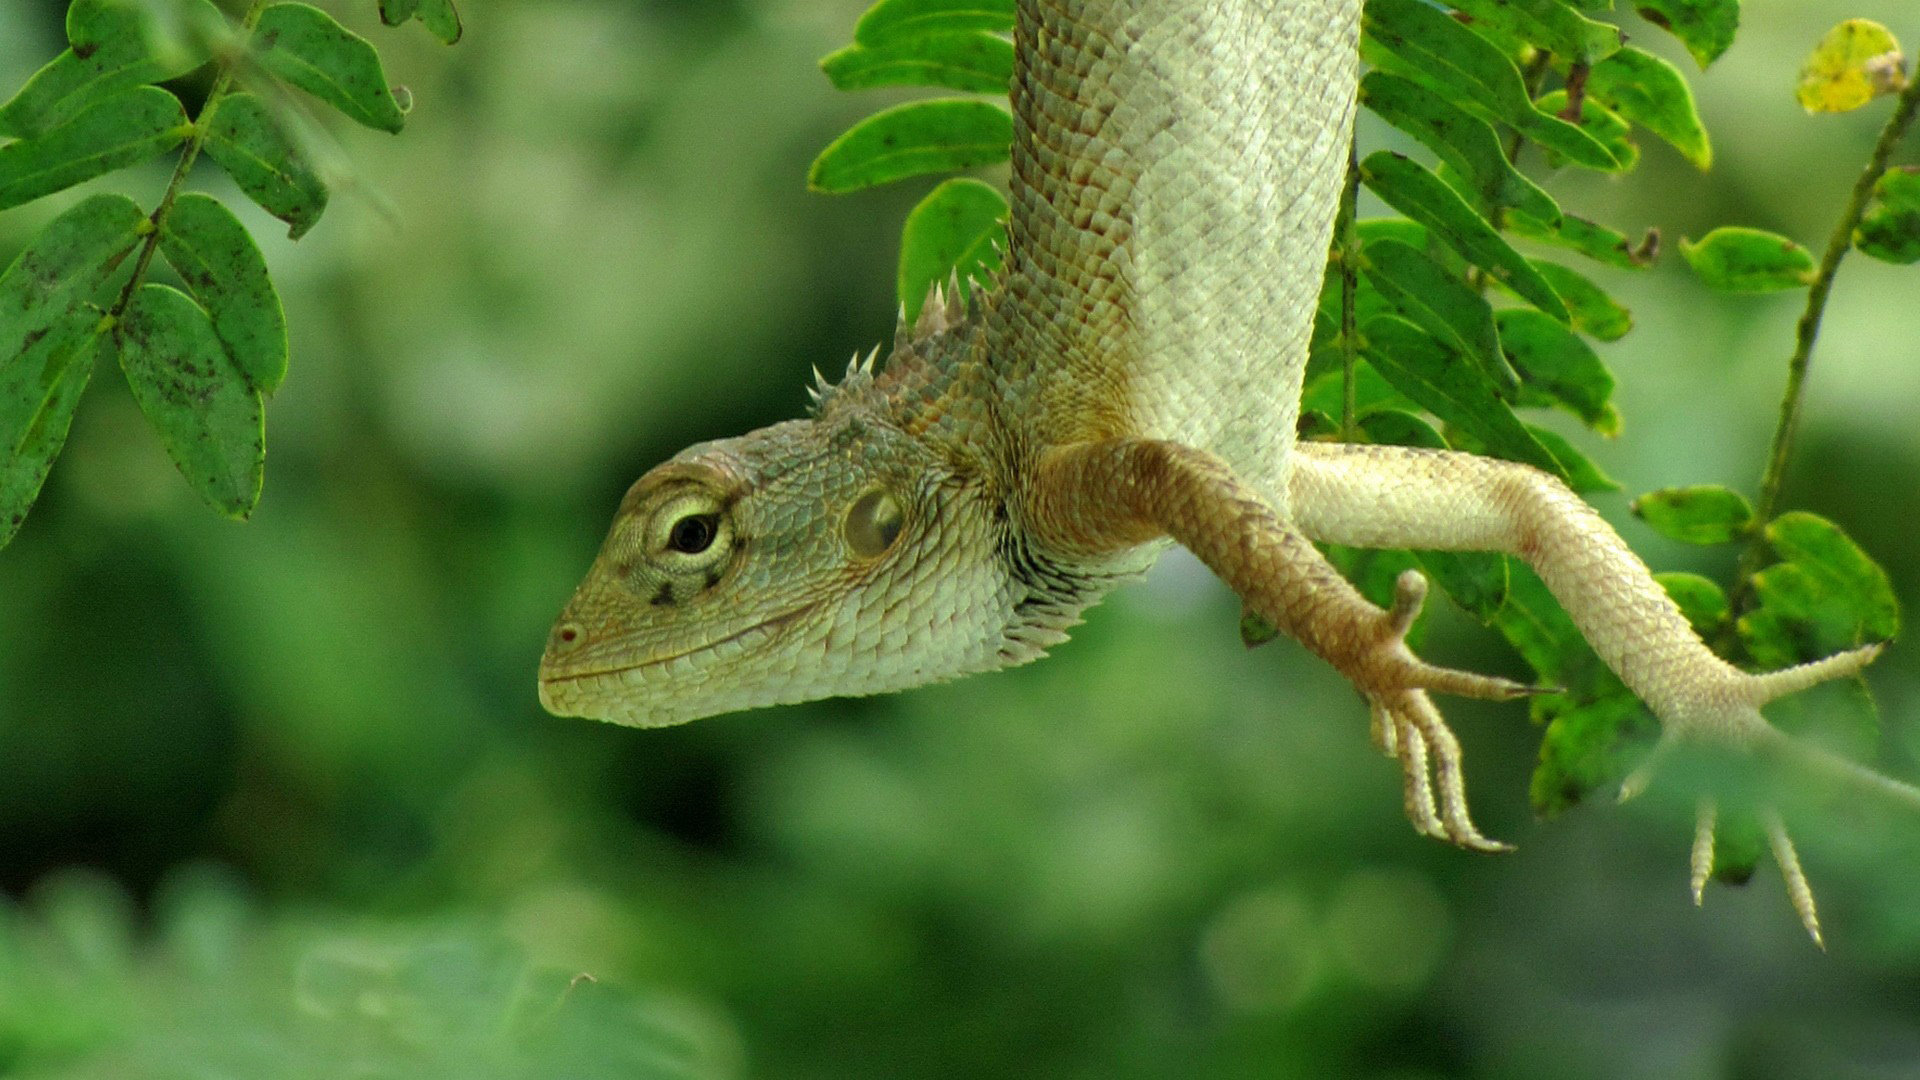 Awesome Lizard free wallpaper ID:444082 for hd 1920x1080 desktop